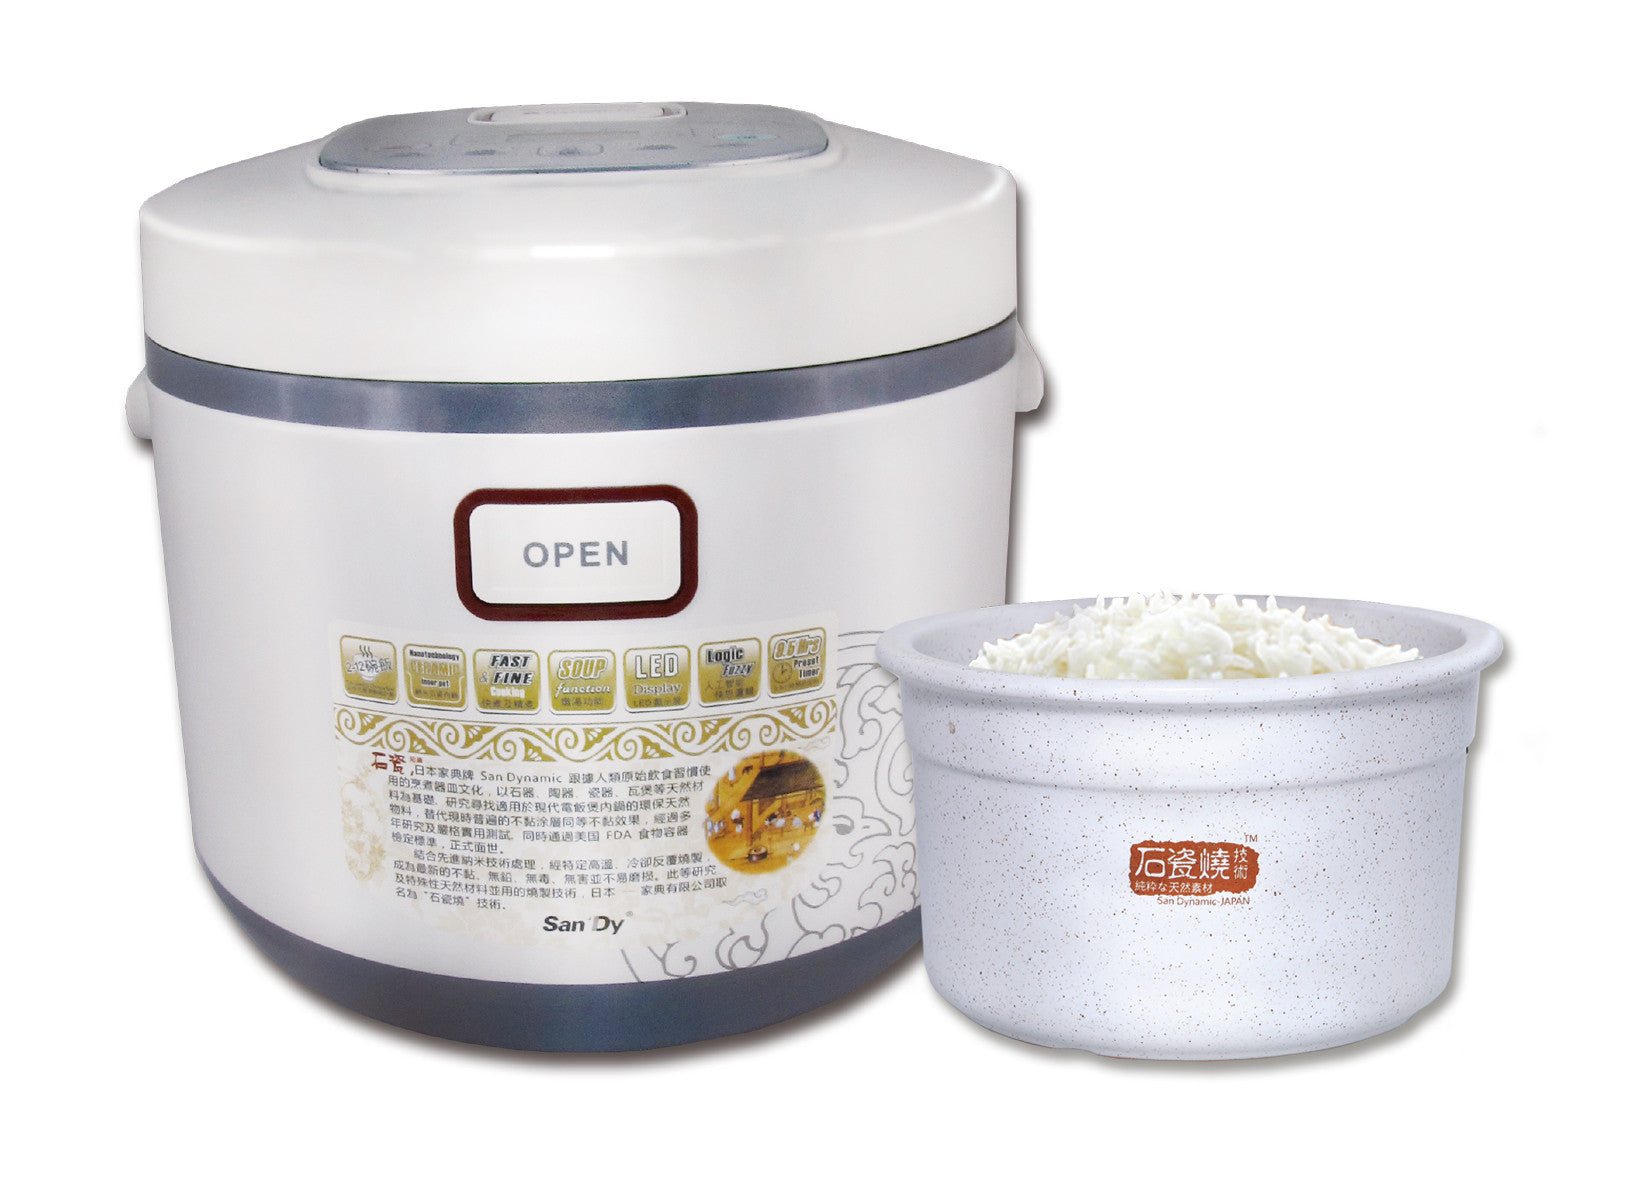 San Dynamic Nanotechnology Ceramic Pot-Rice Cooker